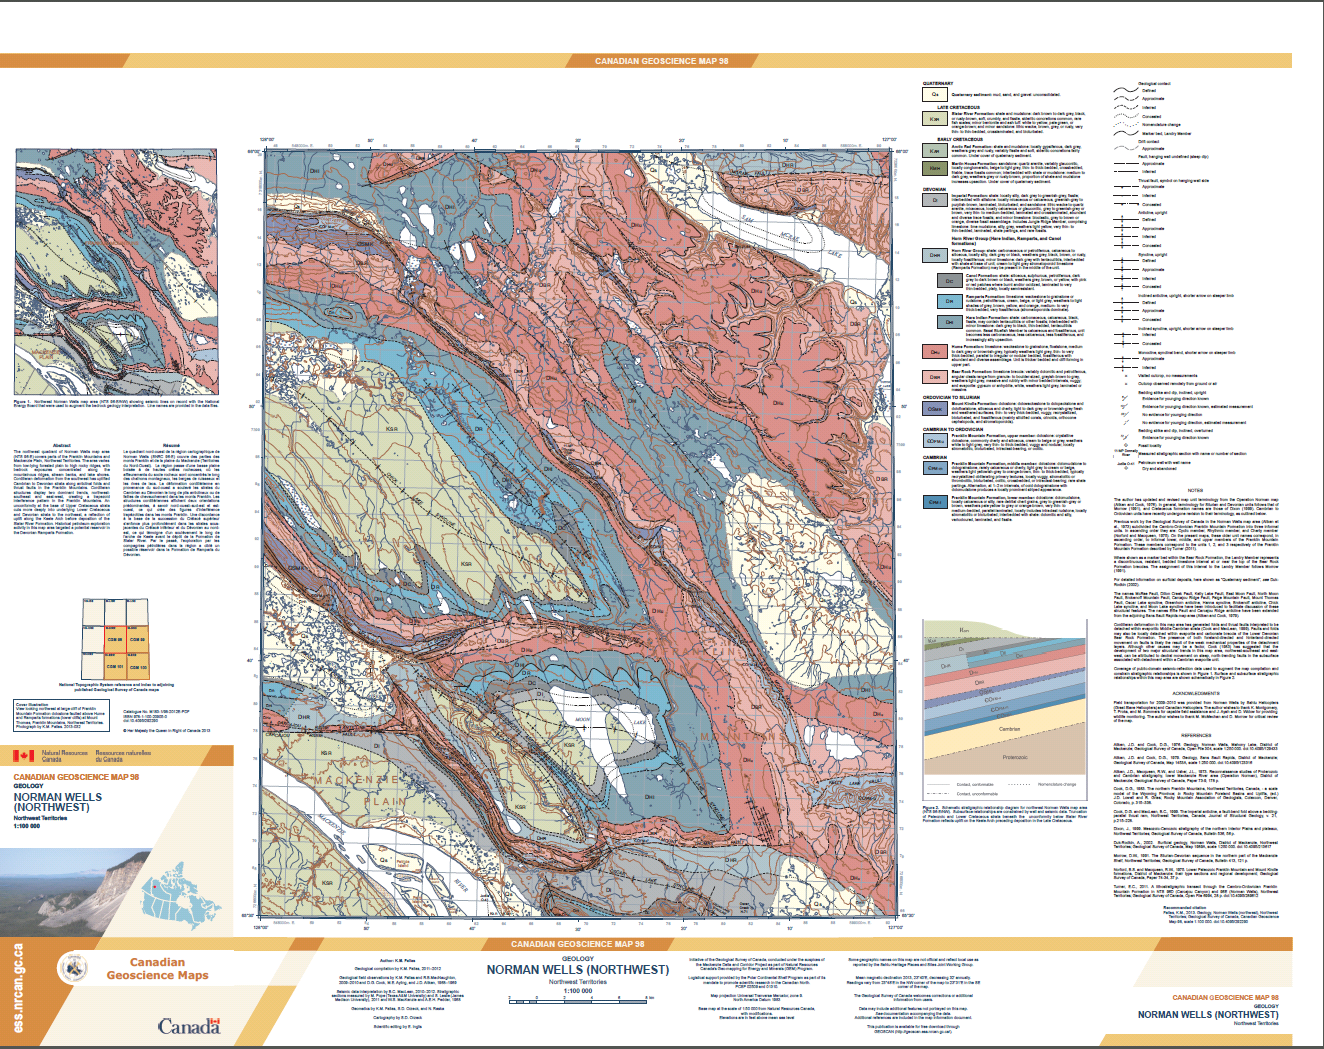 Geology, Norman Wells (northwest), Northwest Territories